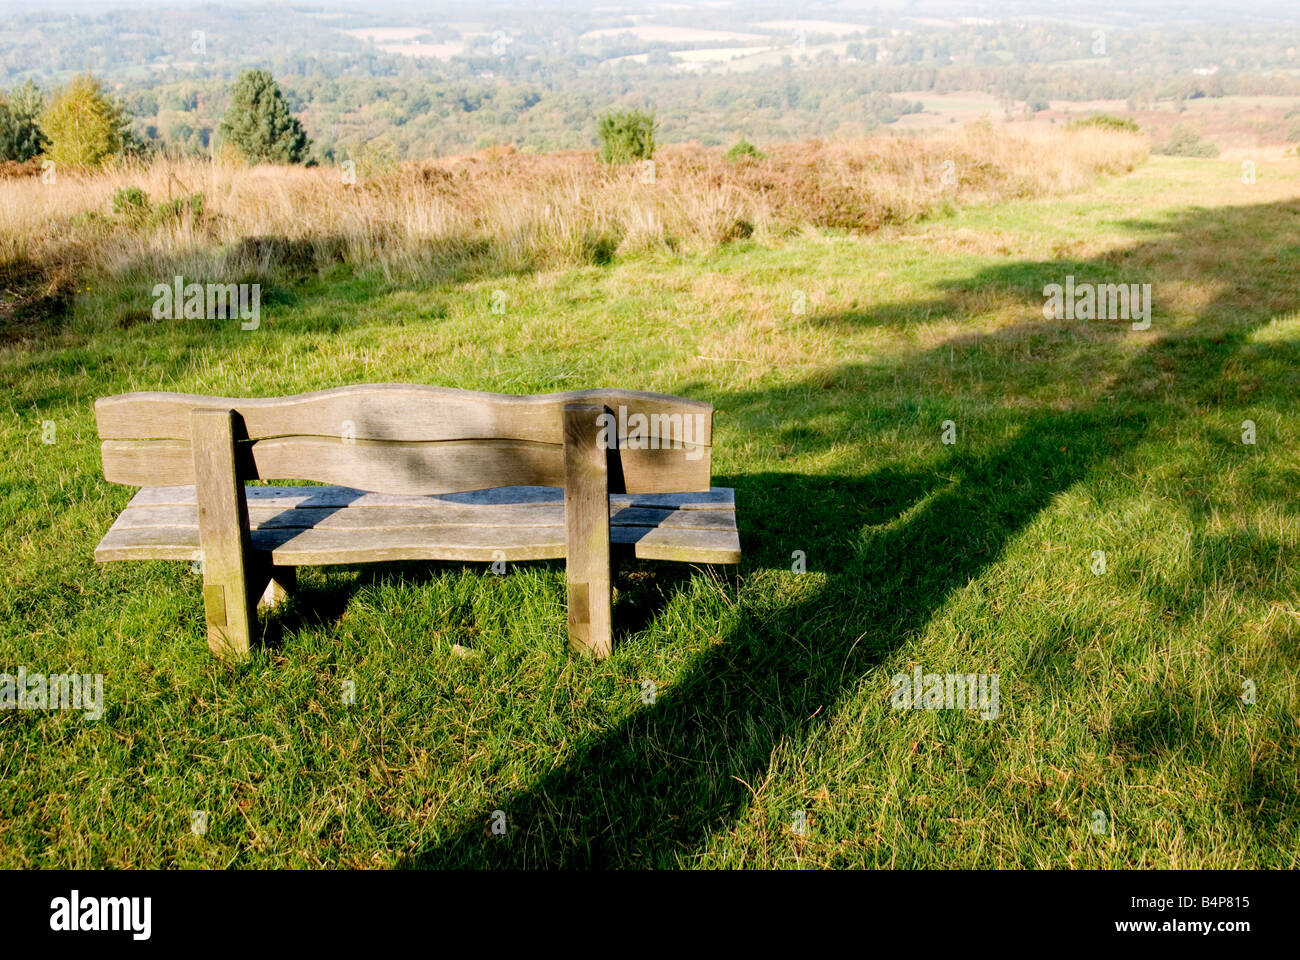 Wooden bench looking out over the Ashdown Forest, with a shaddow of a tree beside of the bench - Stock Image